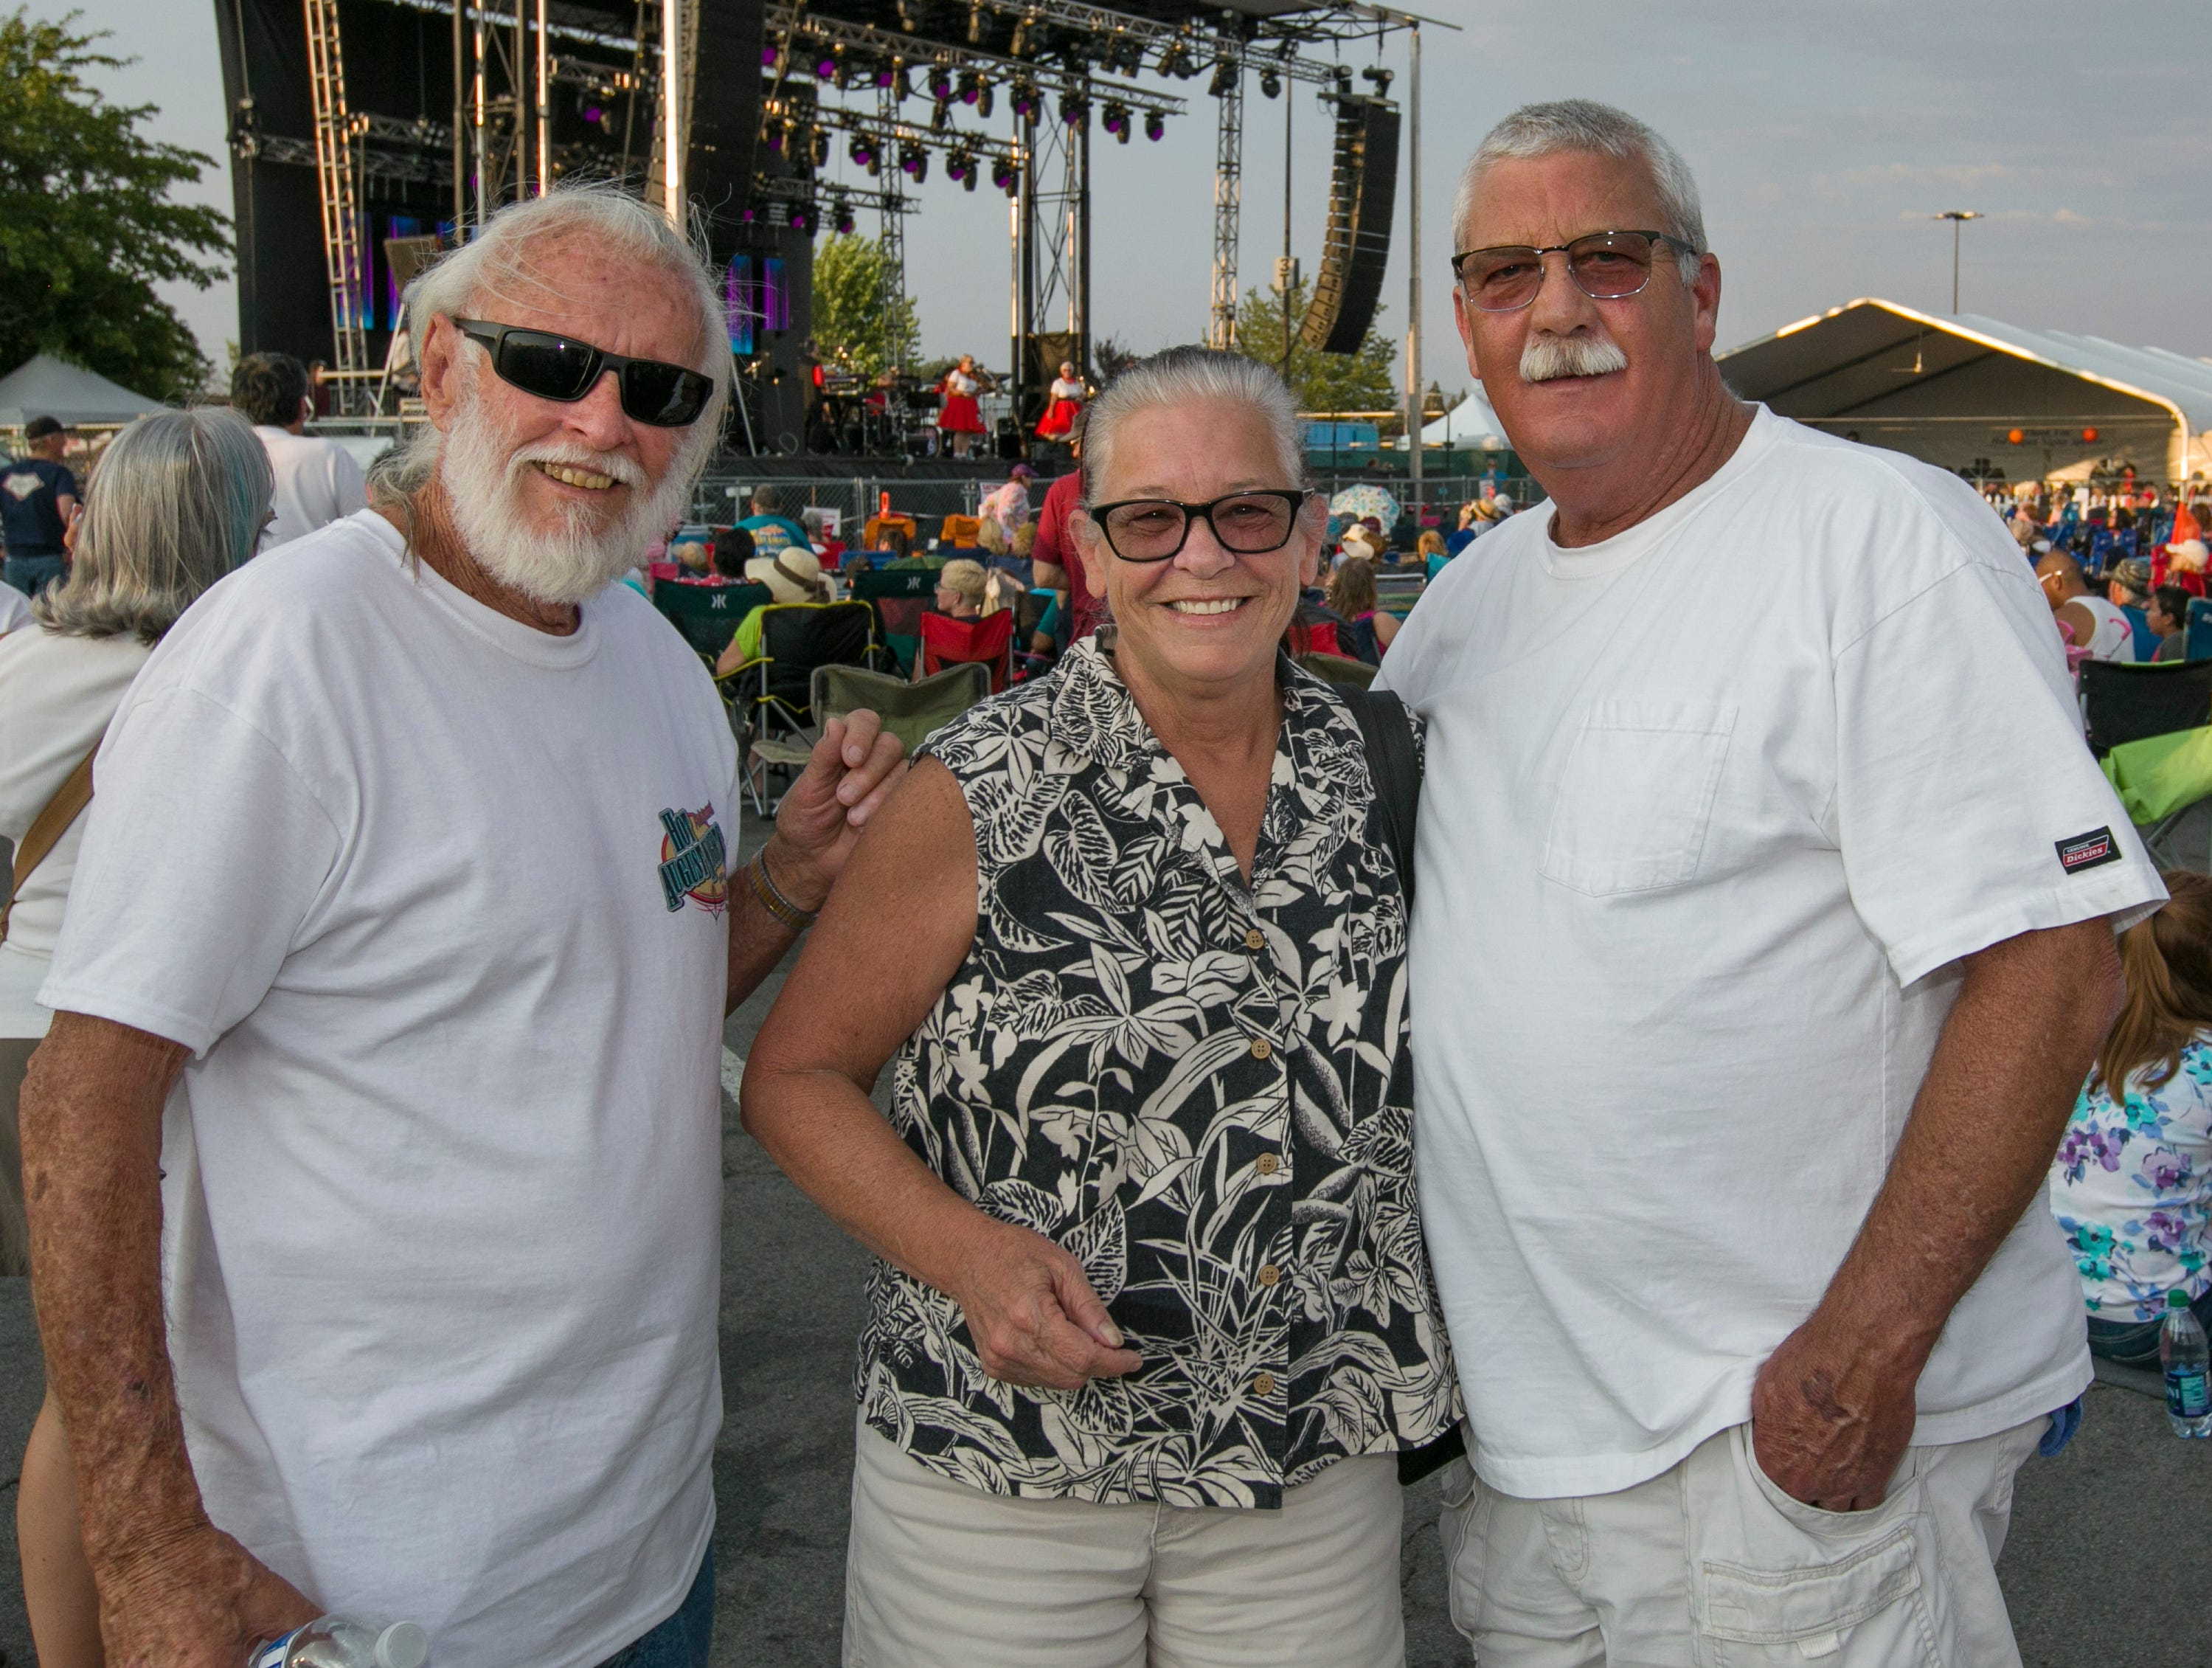 Roger, Debi and Steve during the Starship Concert during Hot August Nights at the Grand Sierra Resort on Friday, August 10, 2018.